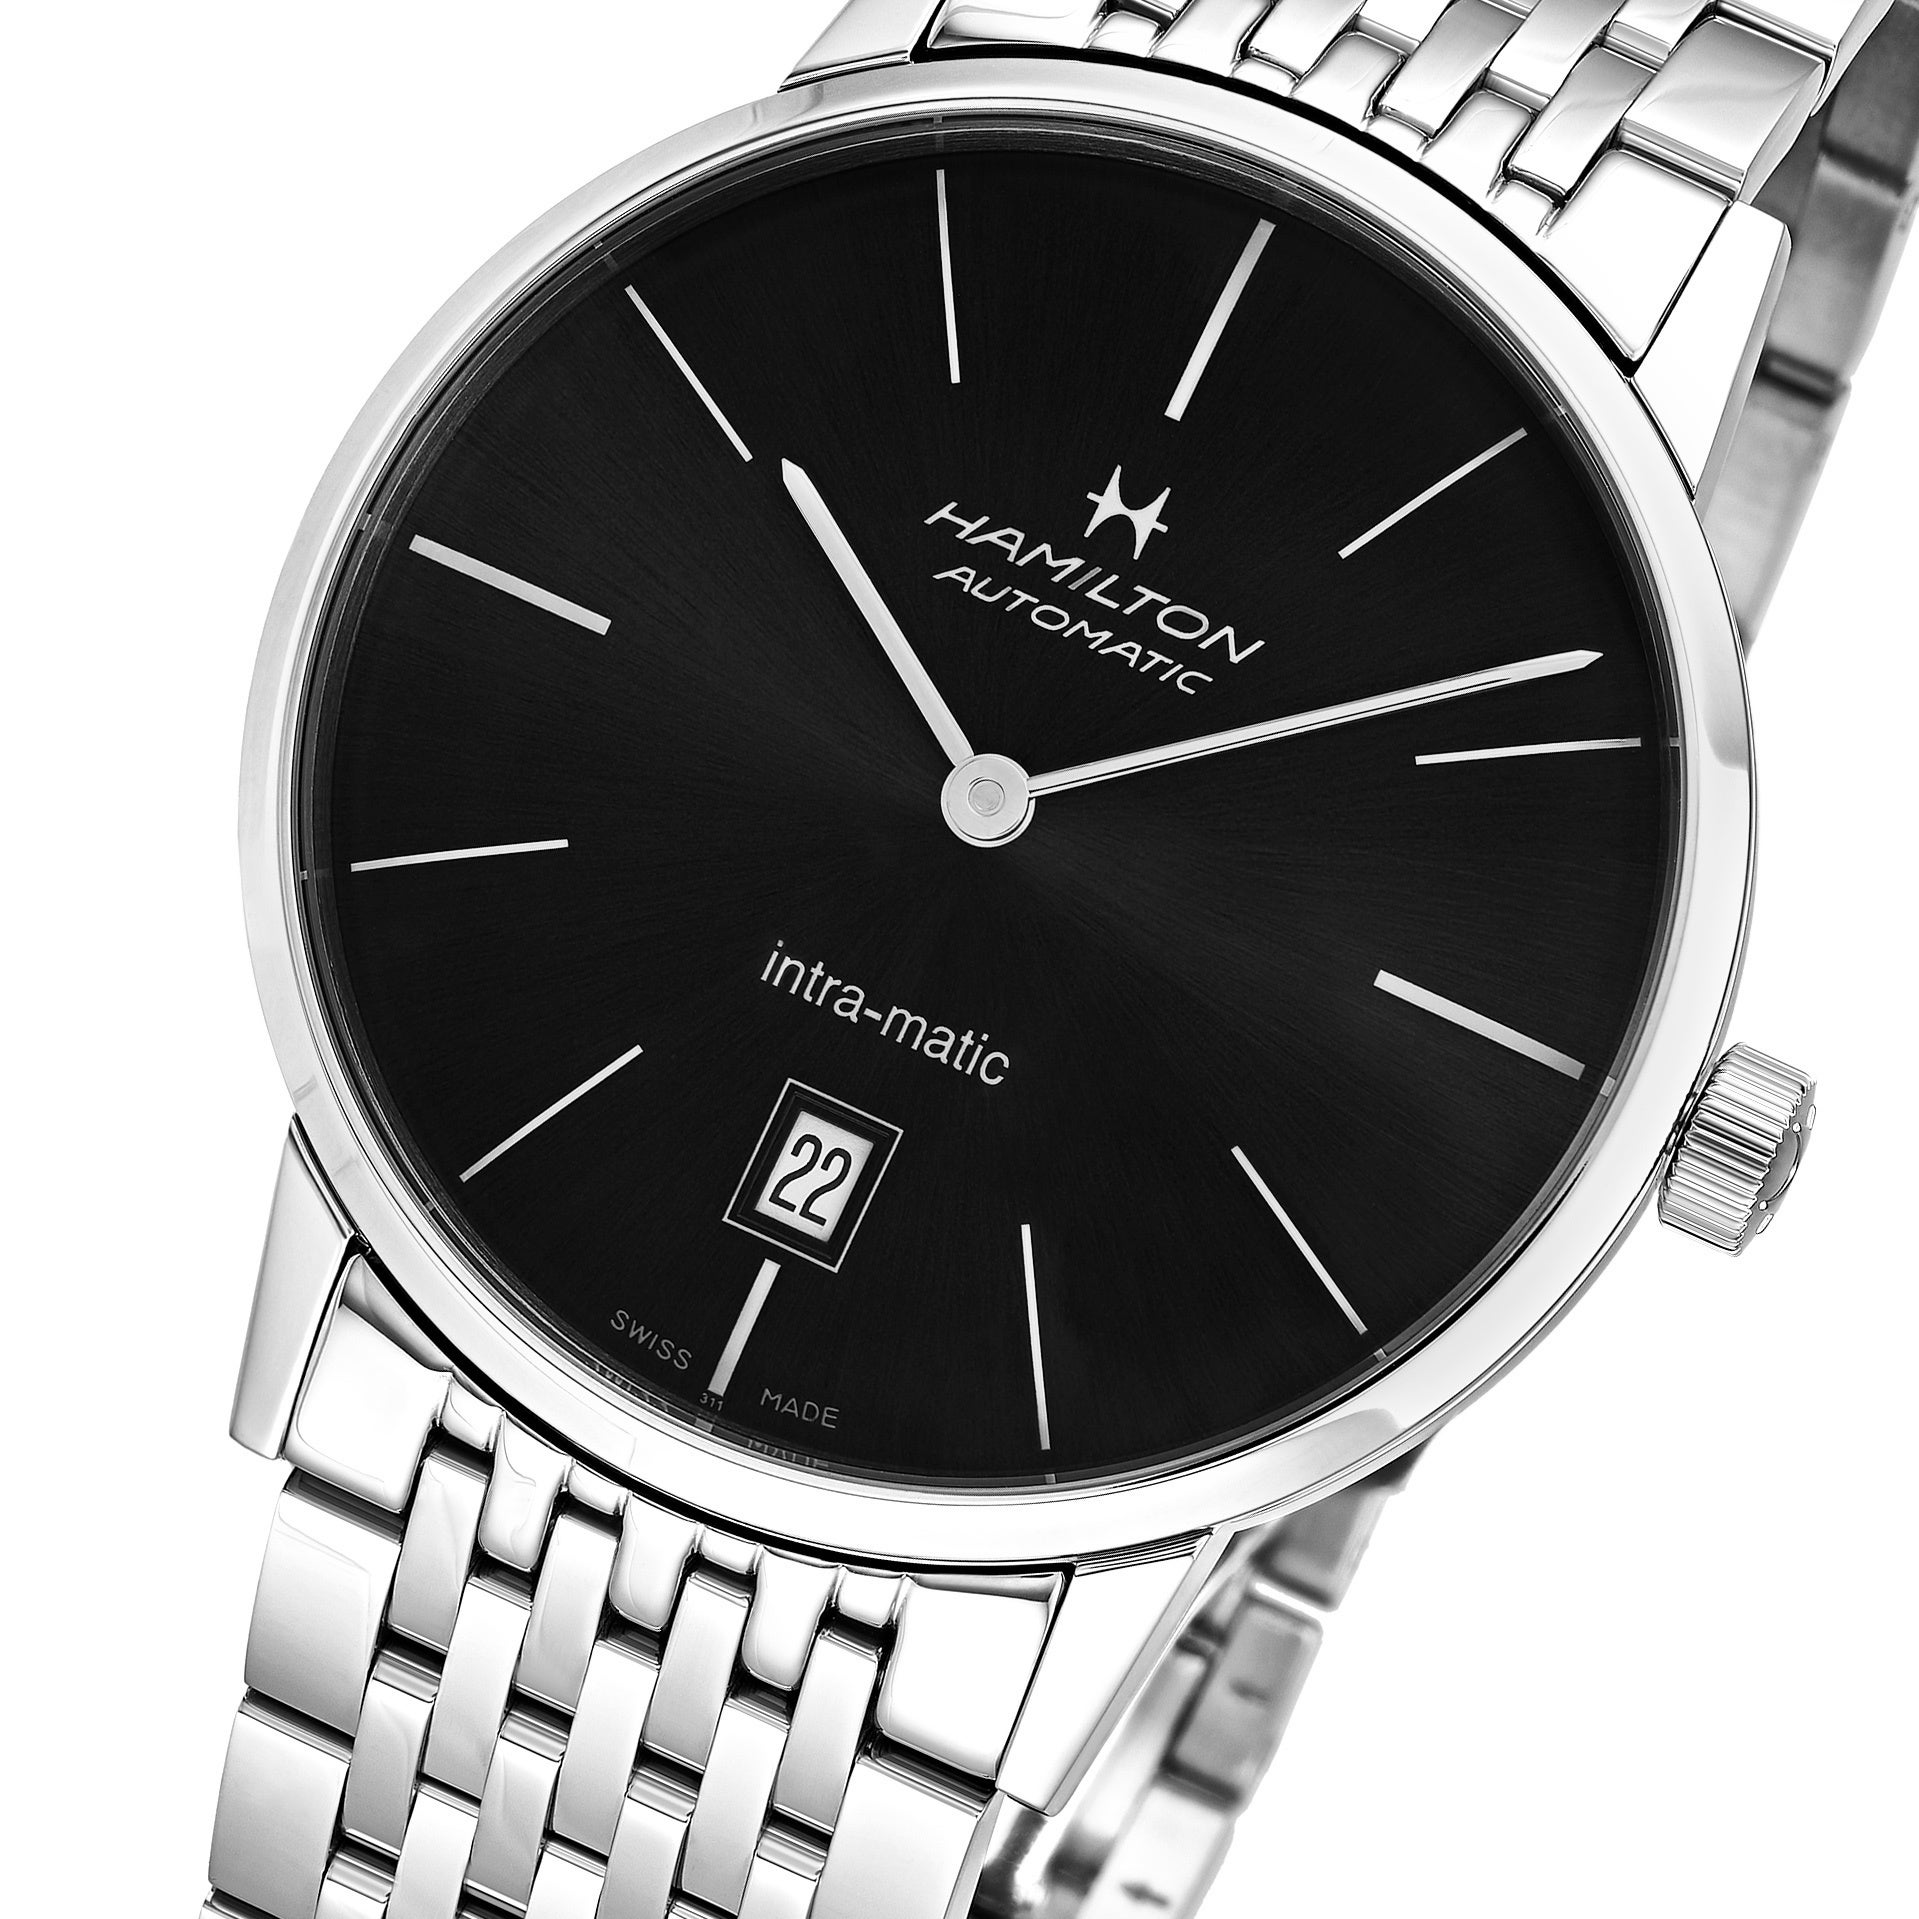 e3a82ec9aa5 Shop Hamilton Men s  Timeless Class  Black Dial Stainless Steel Swiss  Intra-matic Watch - Free Shipping Today - Overstock - 18058307